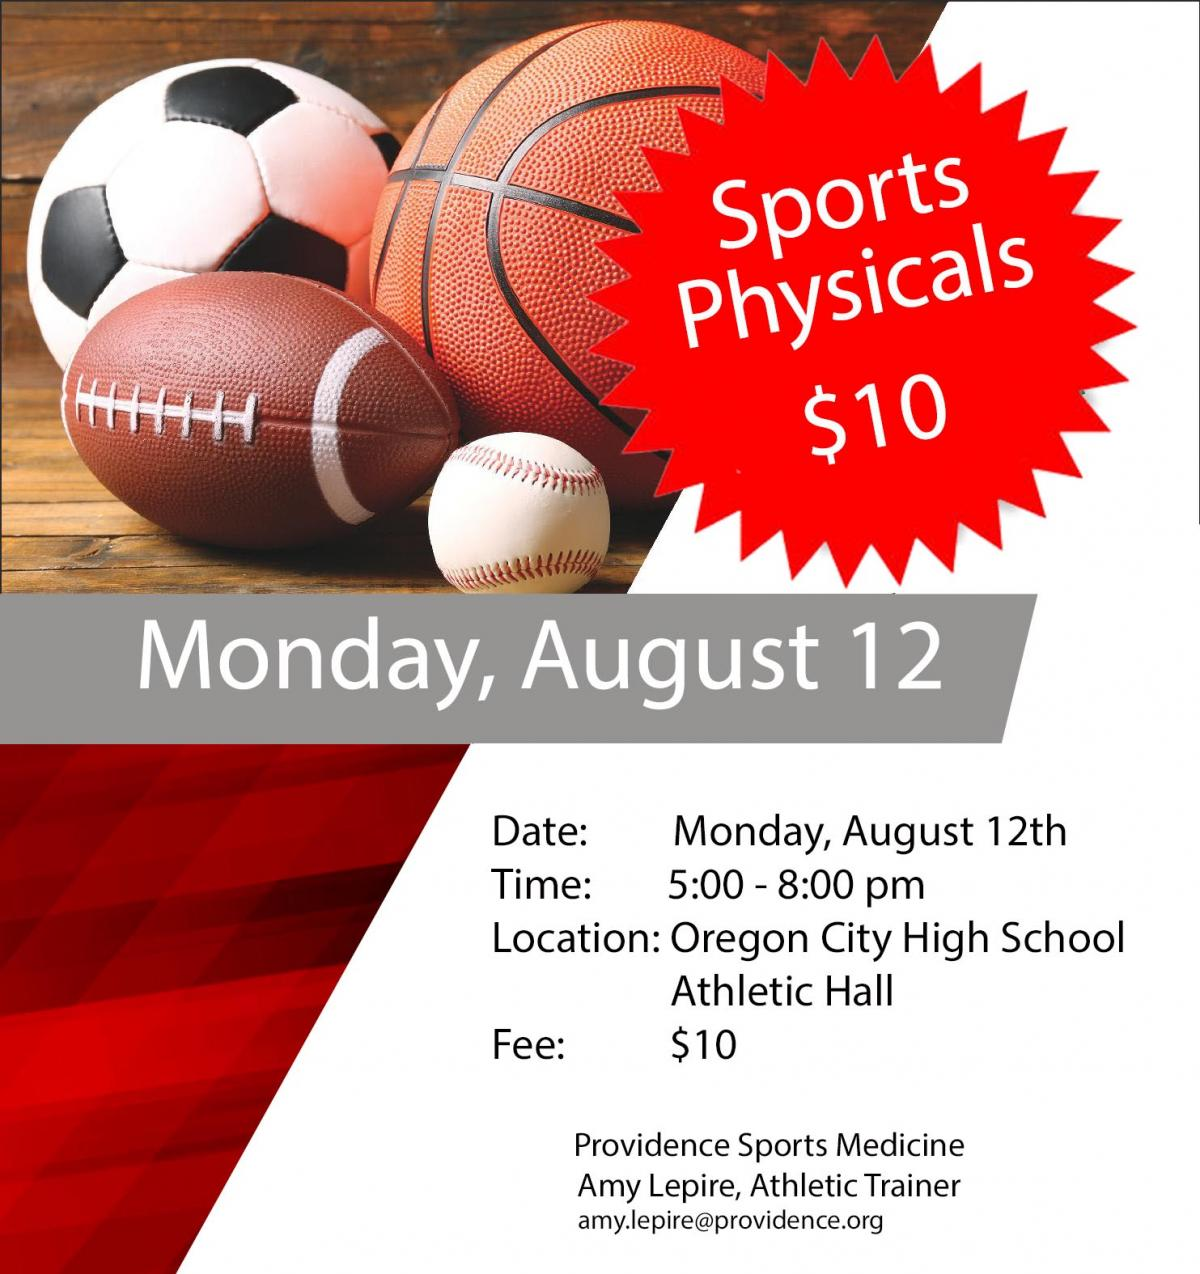 sports physical form oregon  Sports Physical Night | Oregon City School District